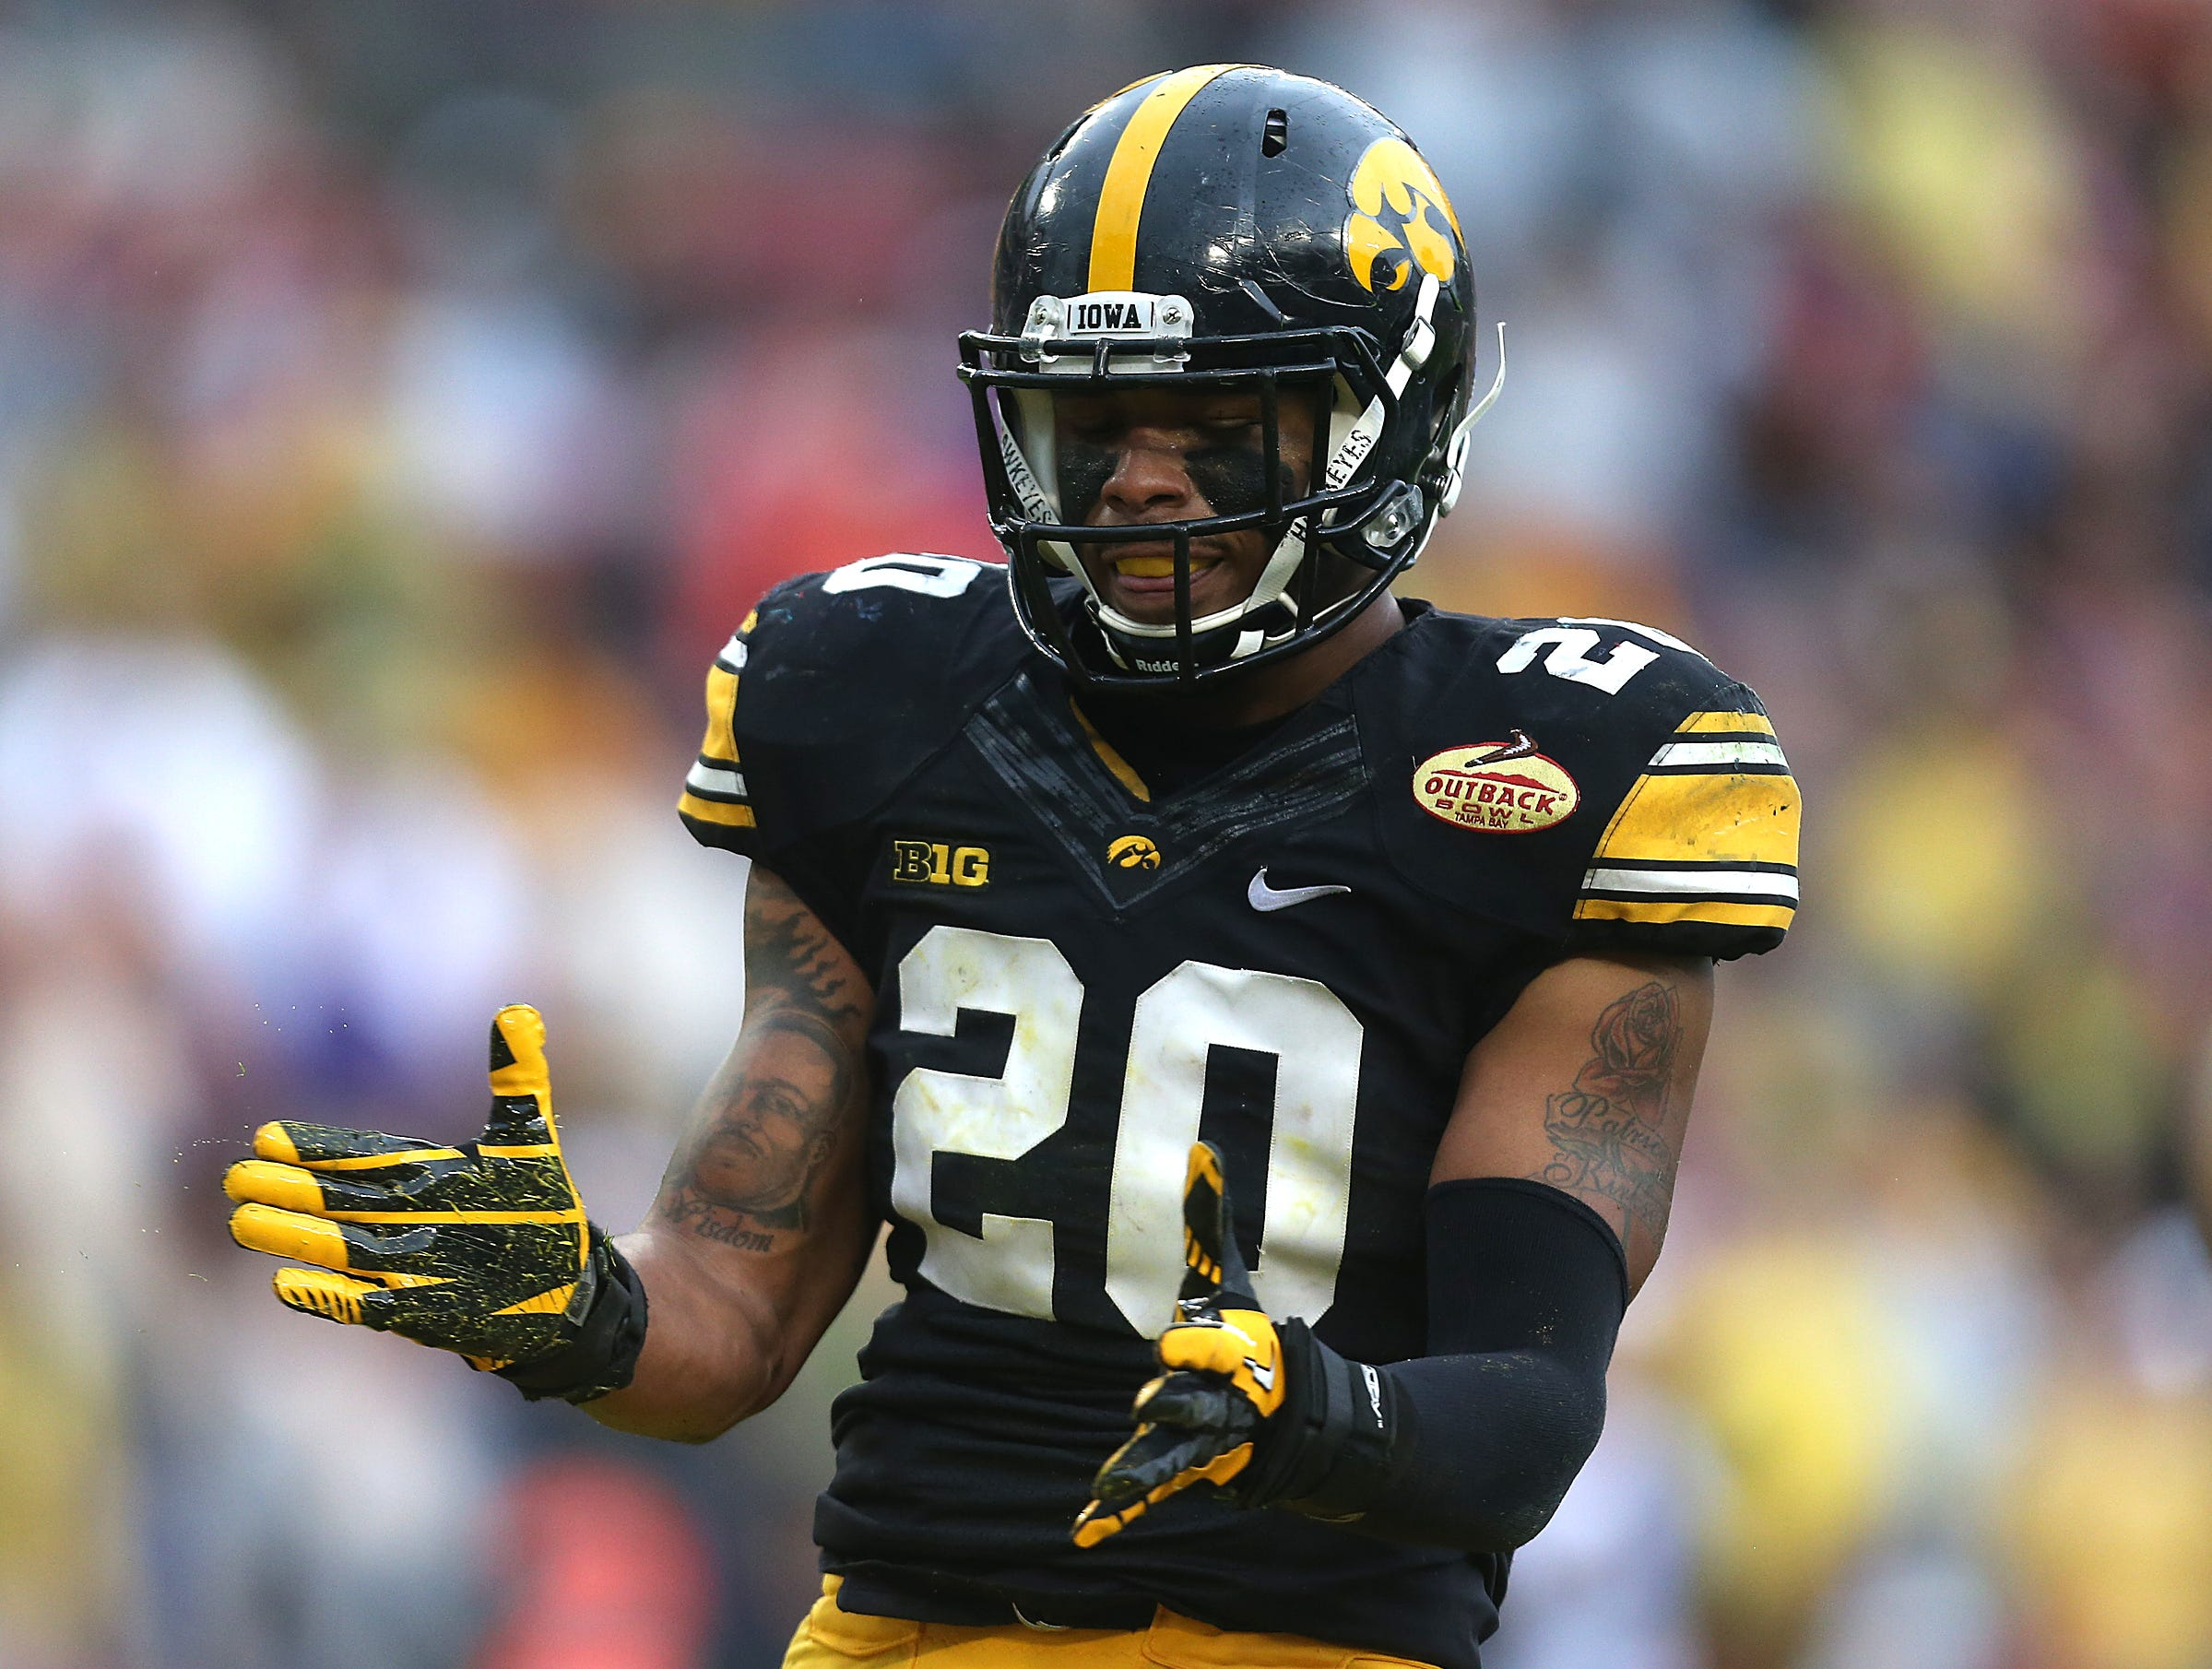 Iowa linebacker Christian Kirksey celebrates after a play against LSU in the Outback Bowl on Wednesday, Jan. 1, 2014, in Tampa, Florida. (Bryon Houlgrave/The Register)